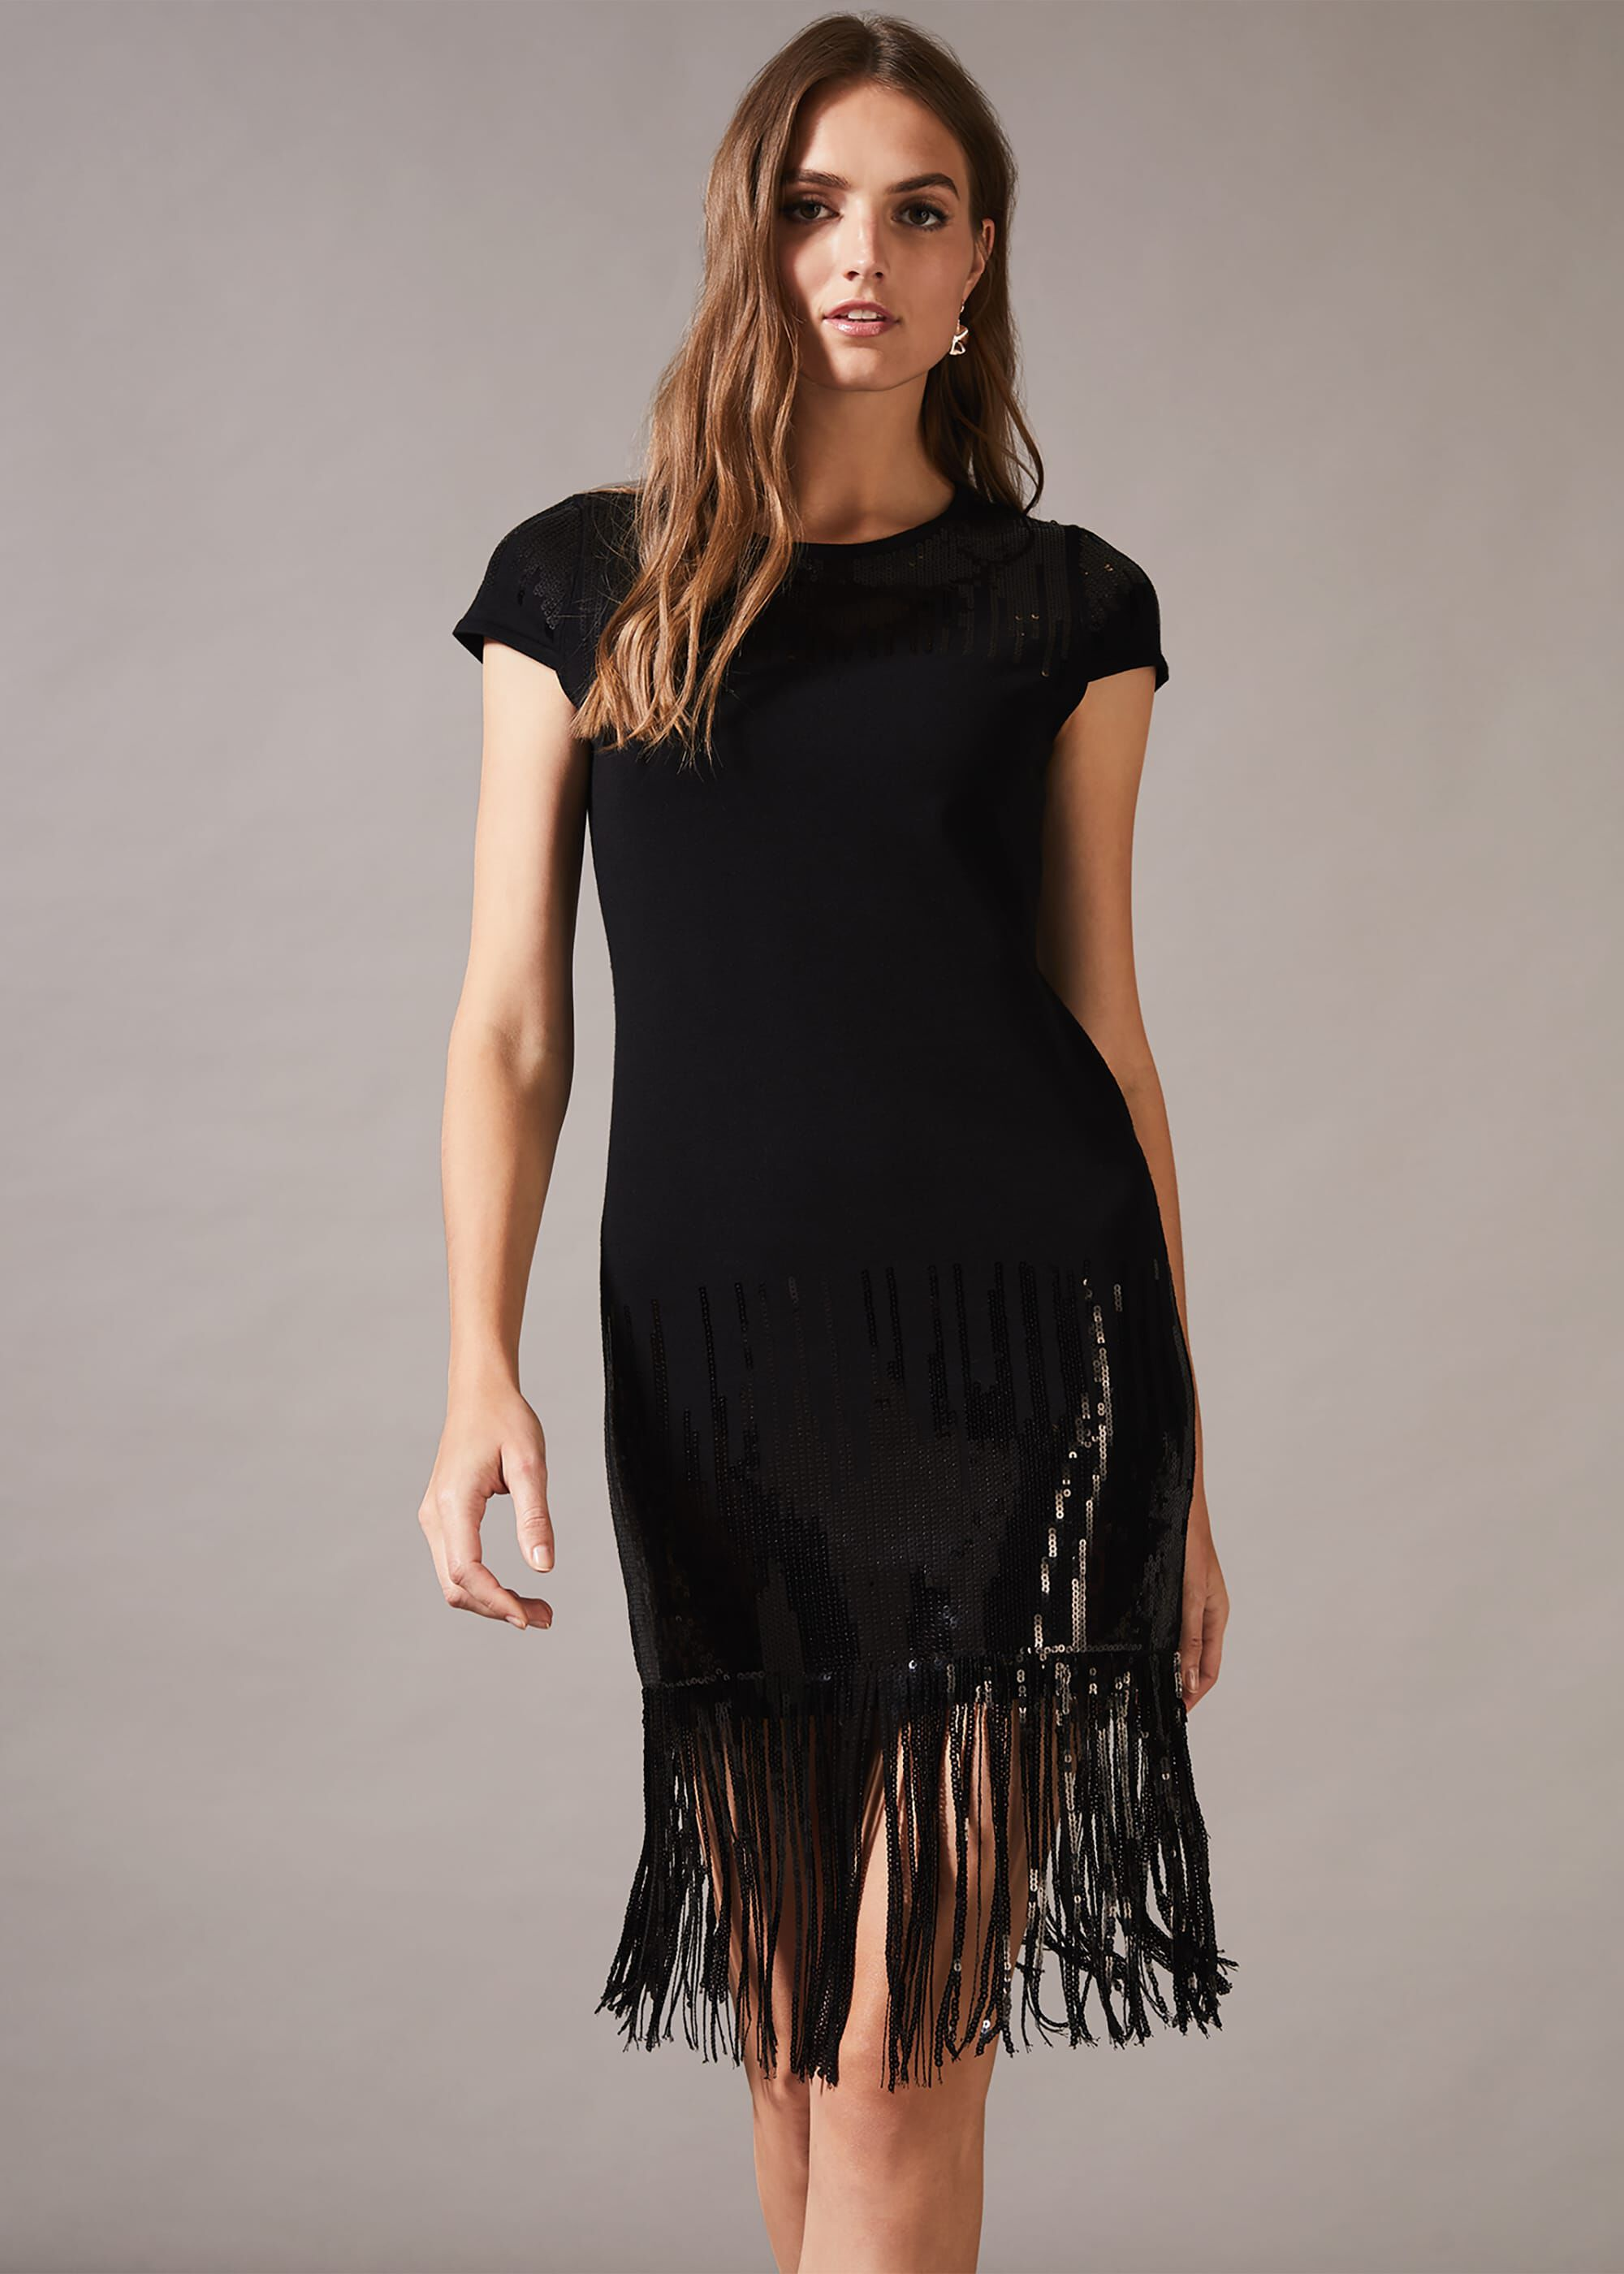 Phase Eight Ferne Fringe Sequin Dress, Black, Shift, Occasion Dress